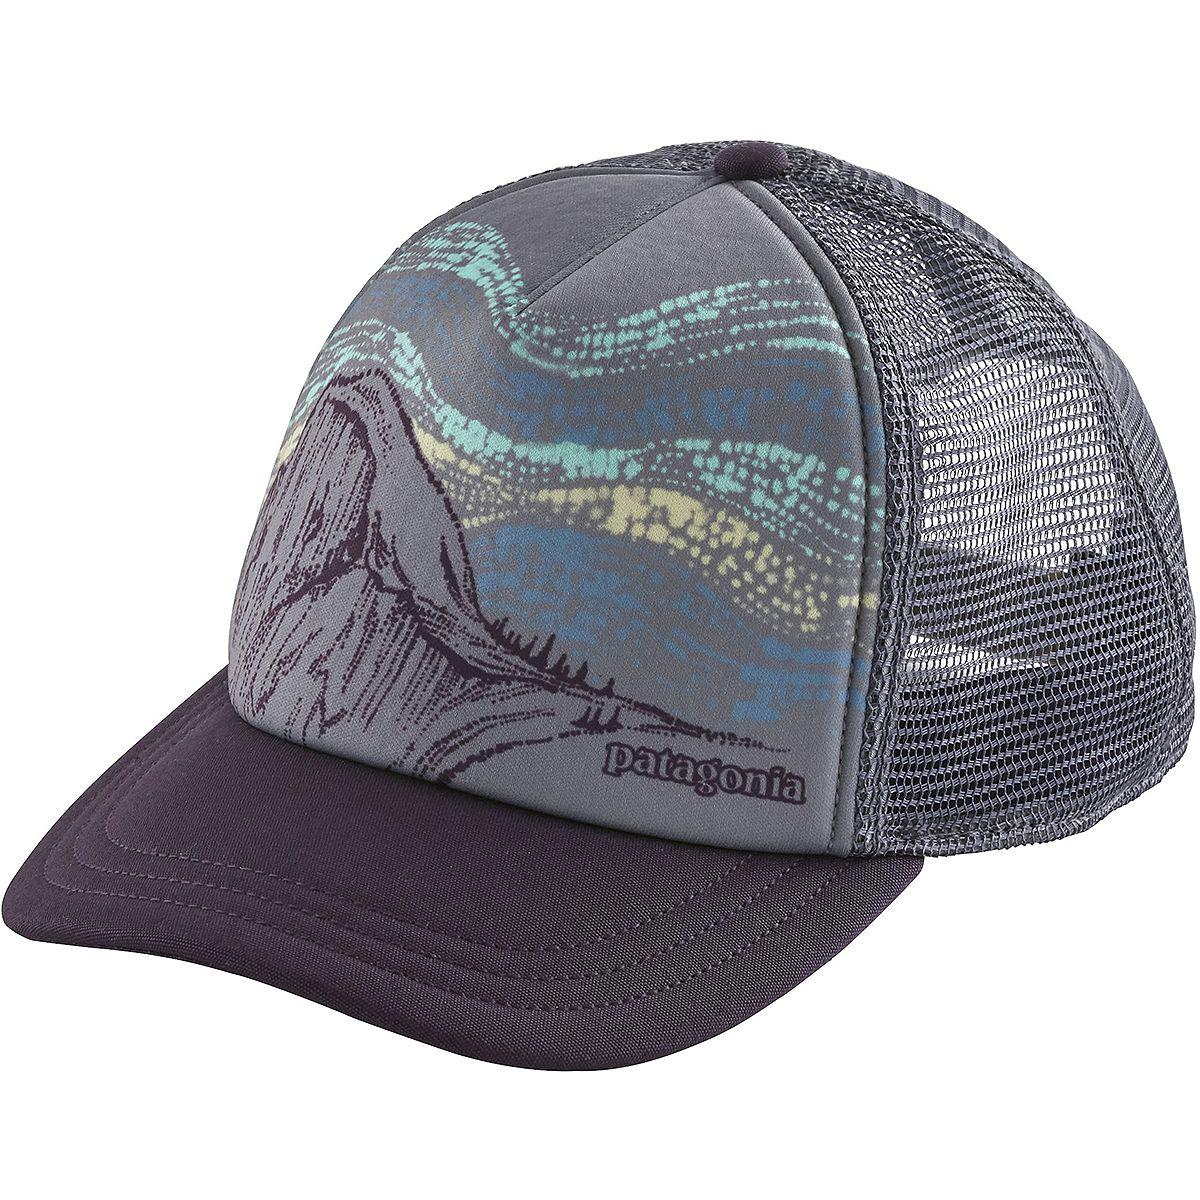 95580d2e8a2 Lyst - Patagonia Raindrop Peak Interstate Hat in Purple for Men